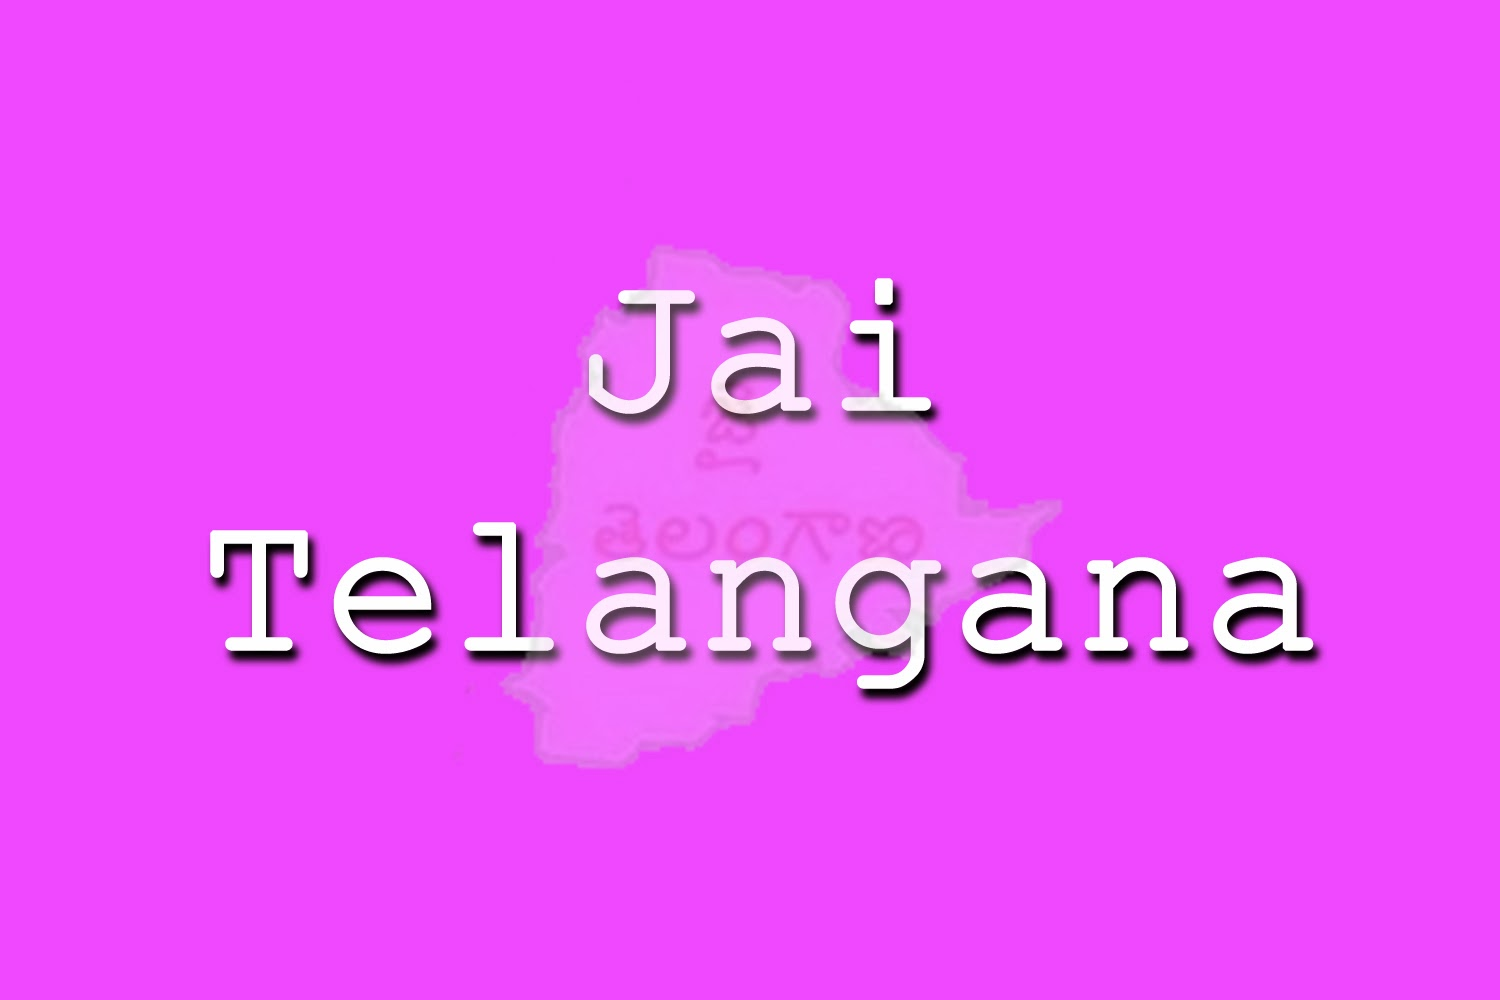 Telangana Wallpaper Gallery